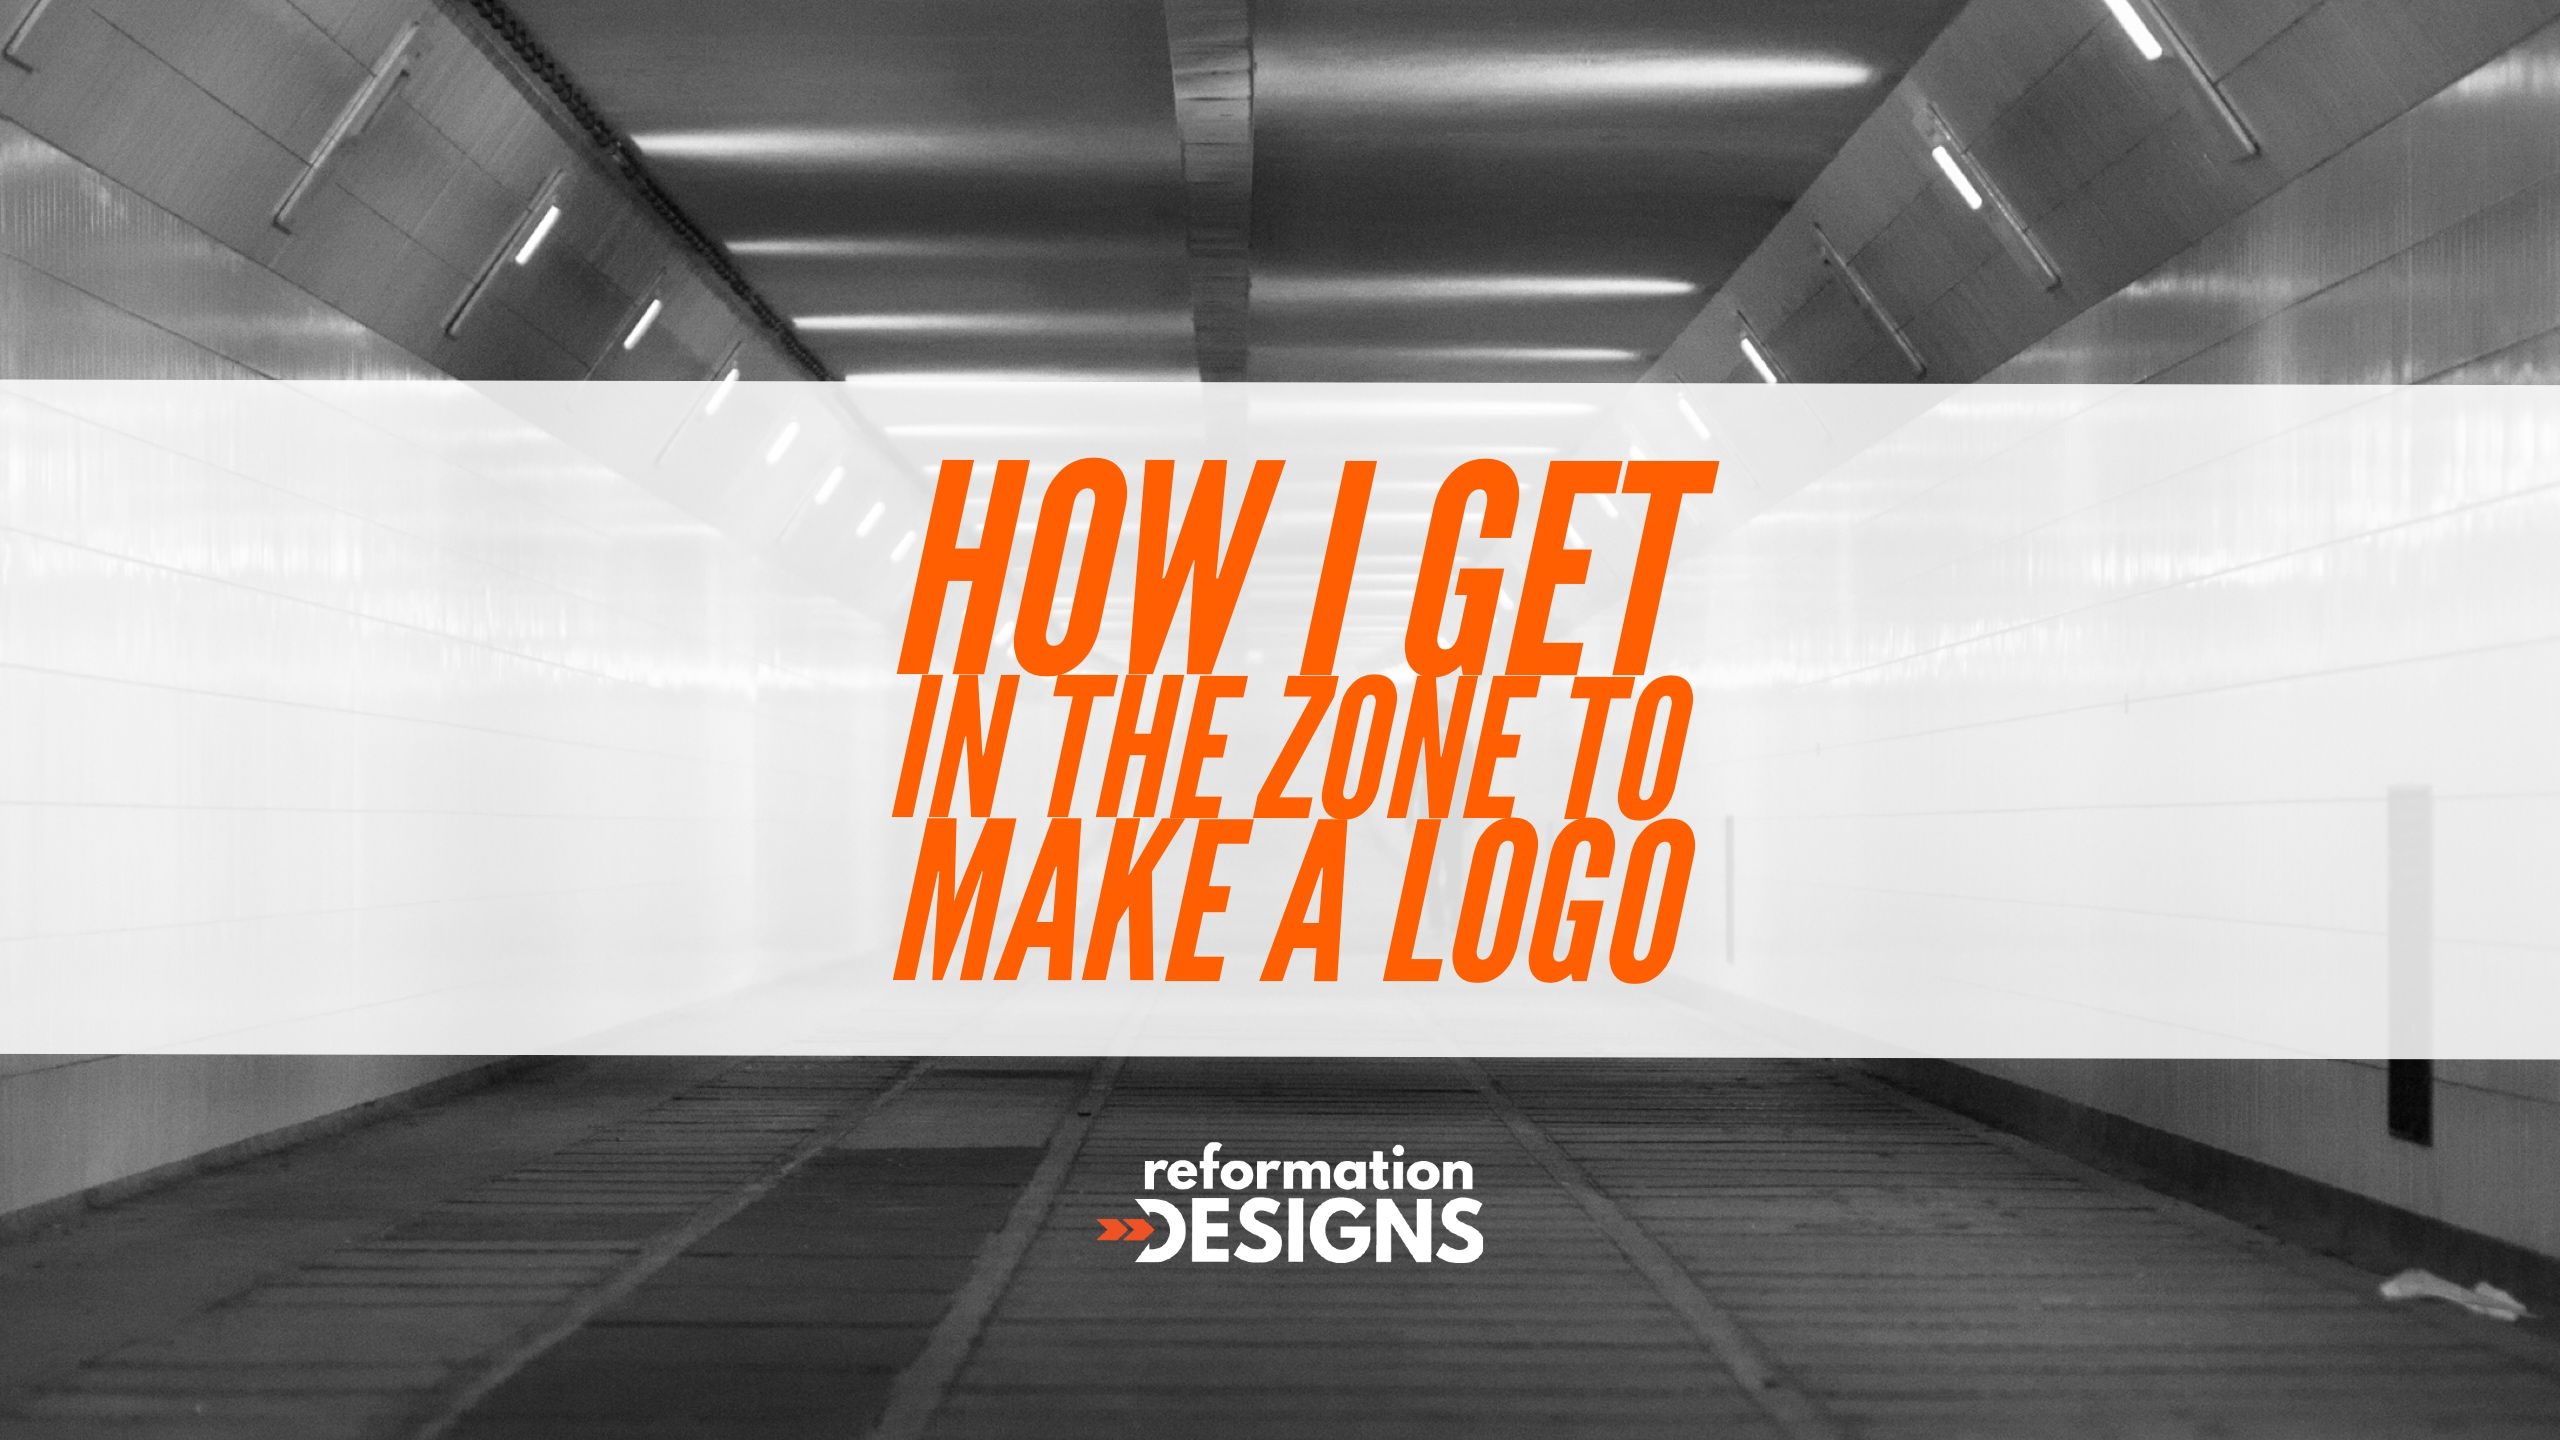 How I Get in the Zone for Logo Design